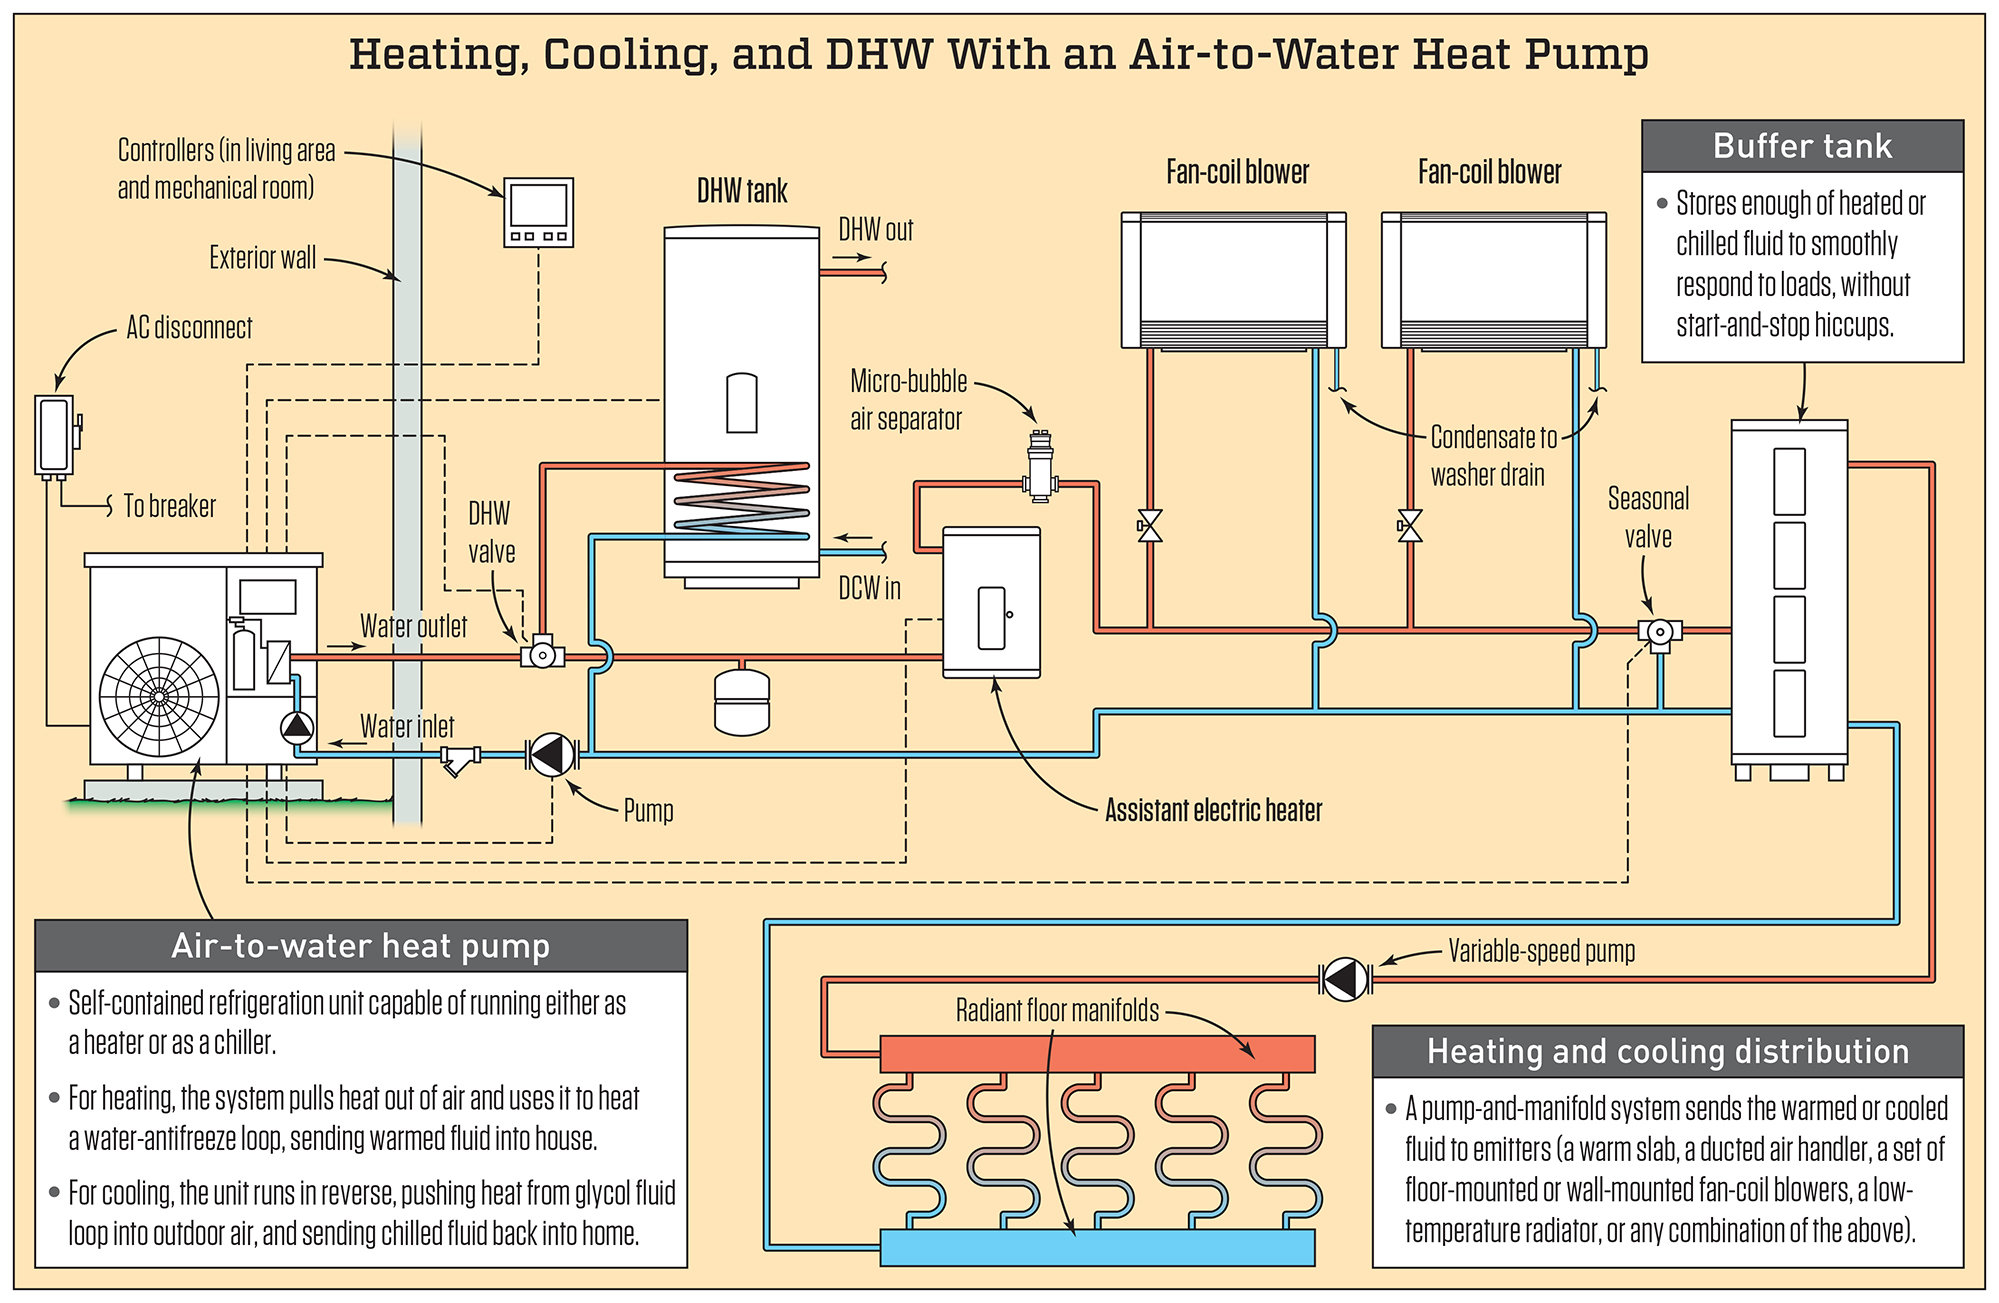 Air-to-Water Heat Pumps | JLC Online on